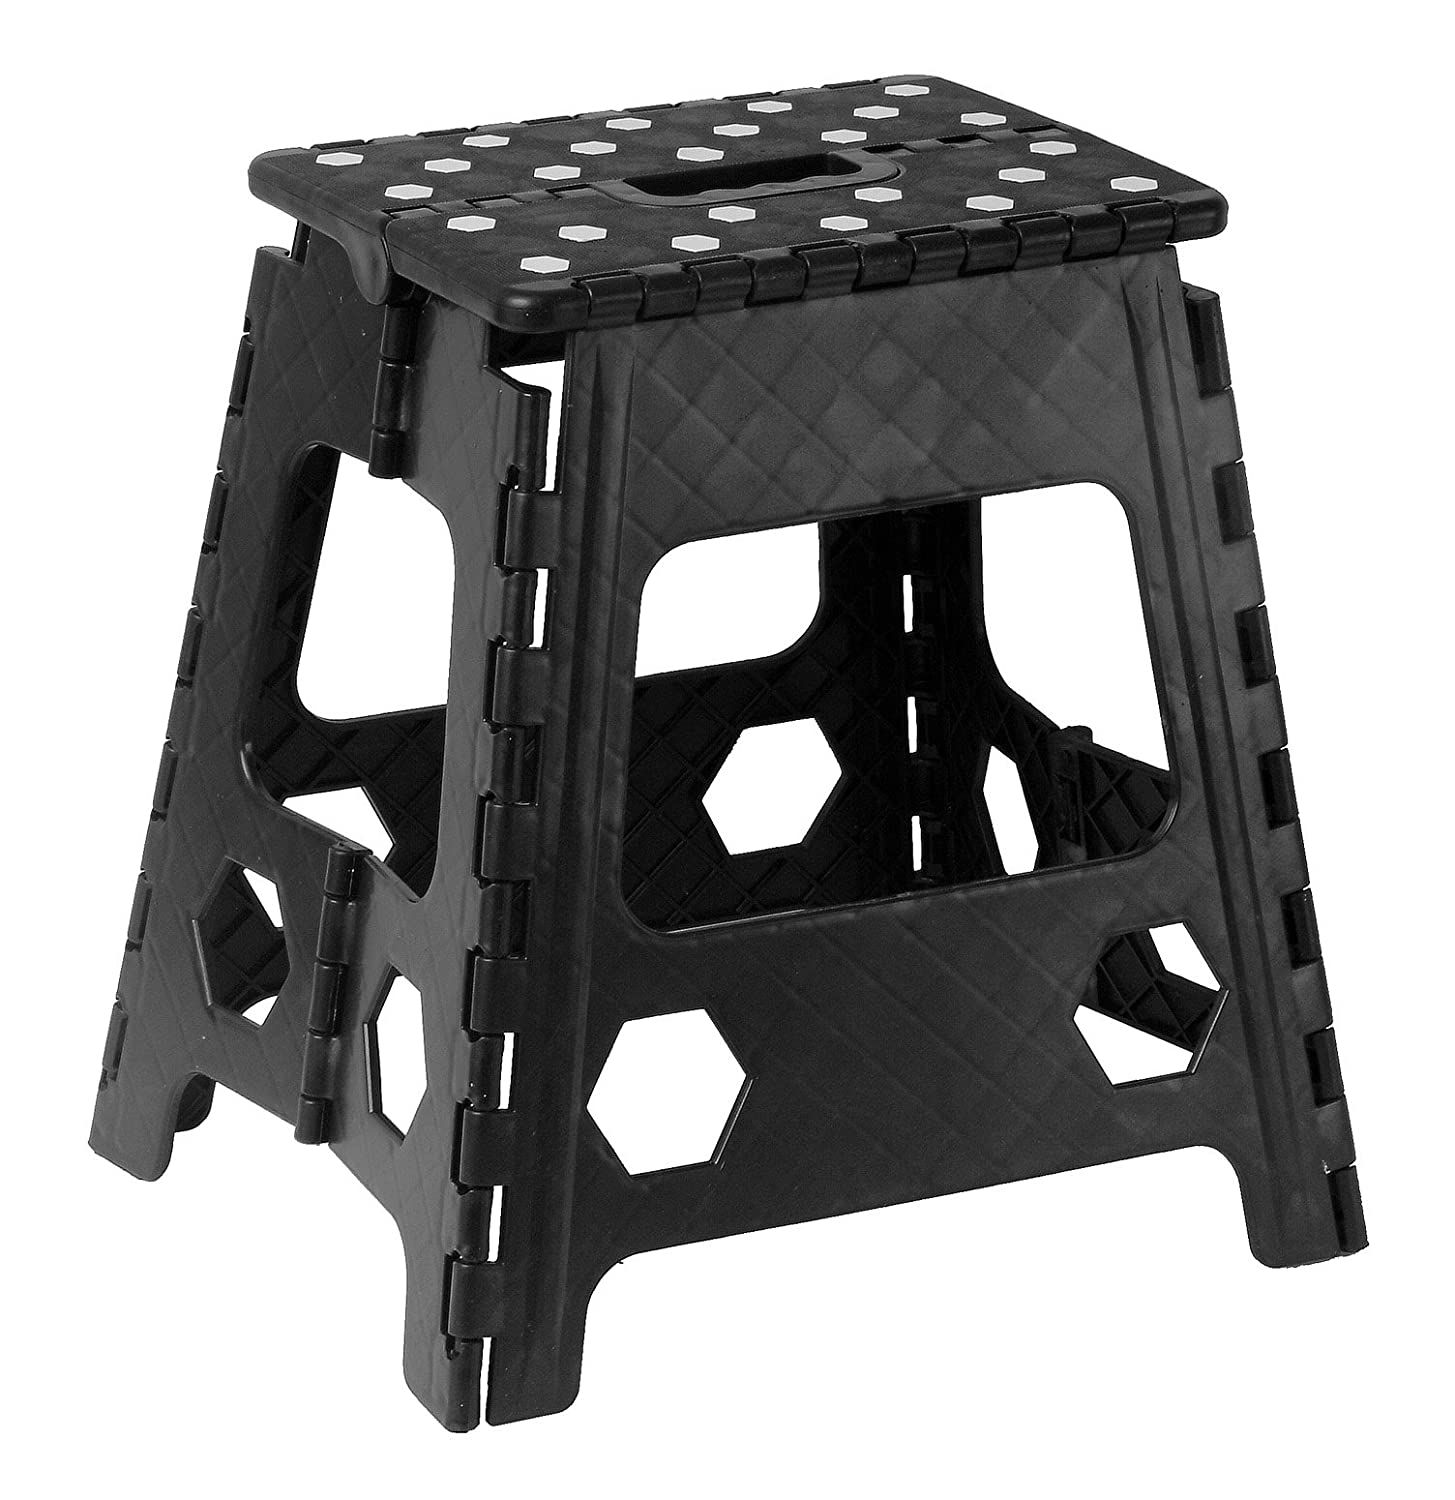 Folding Step Stool 15 Inch with Anti Slip Dots (Black) Superior Performance 307-333